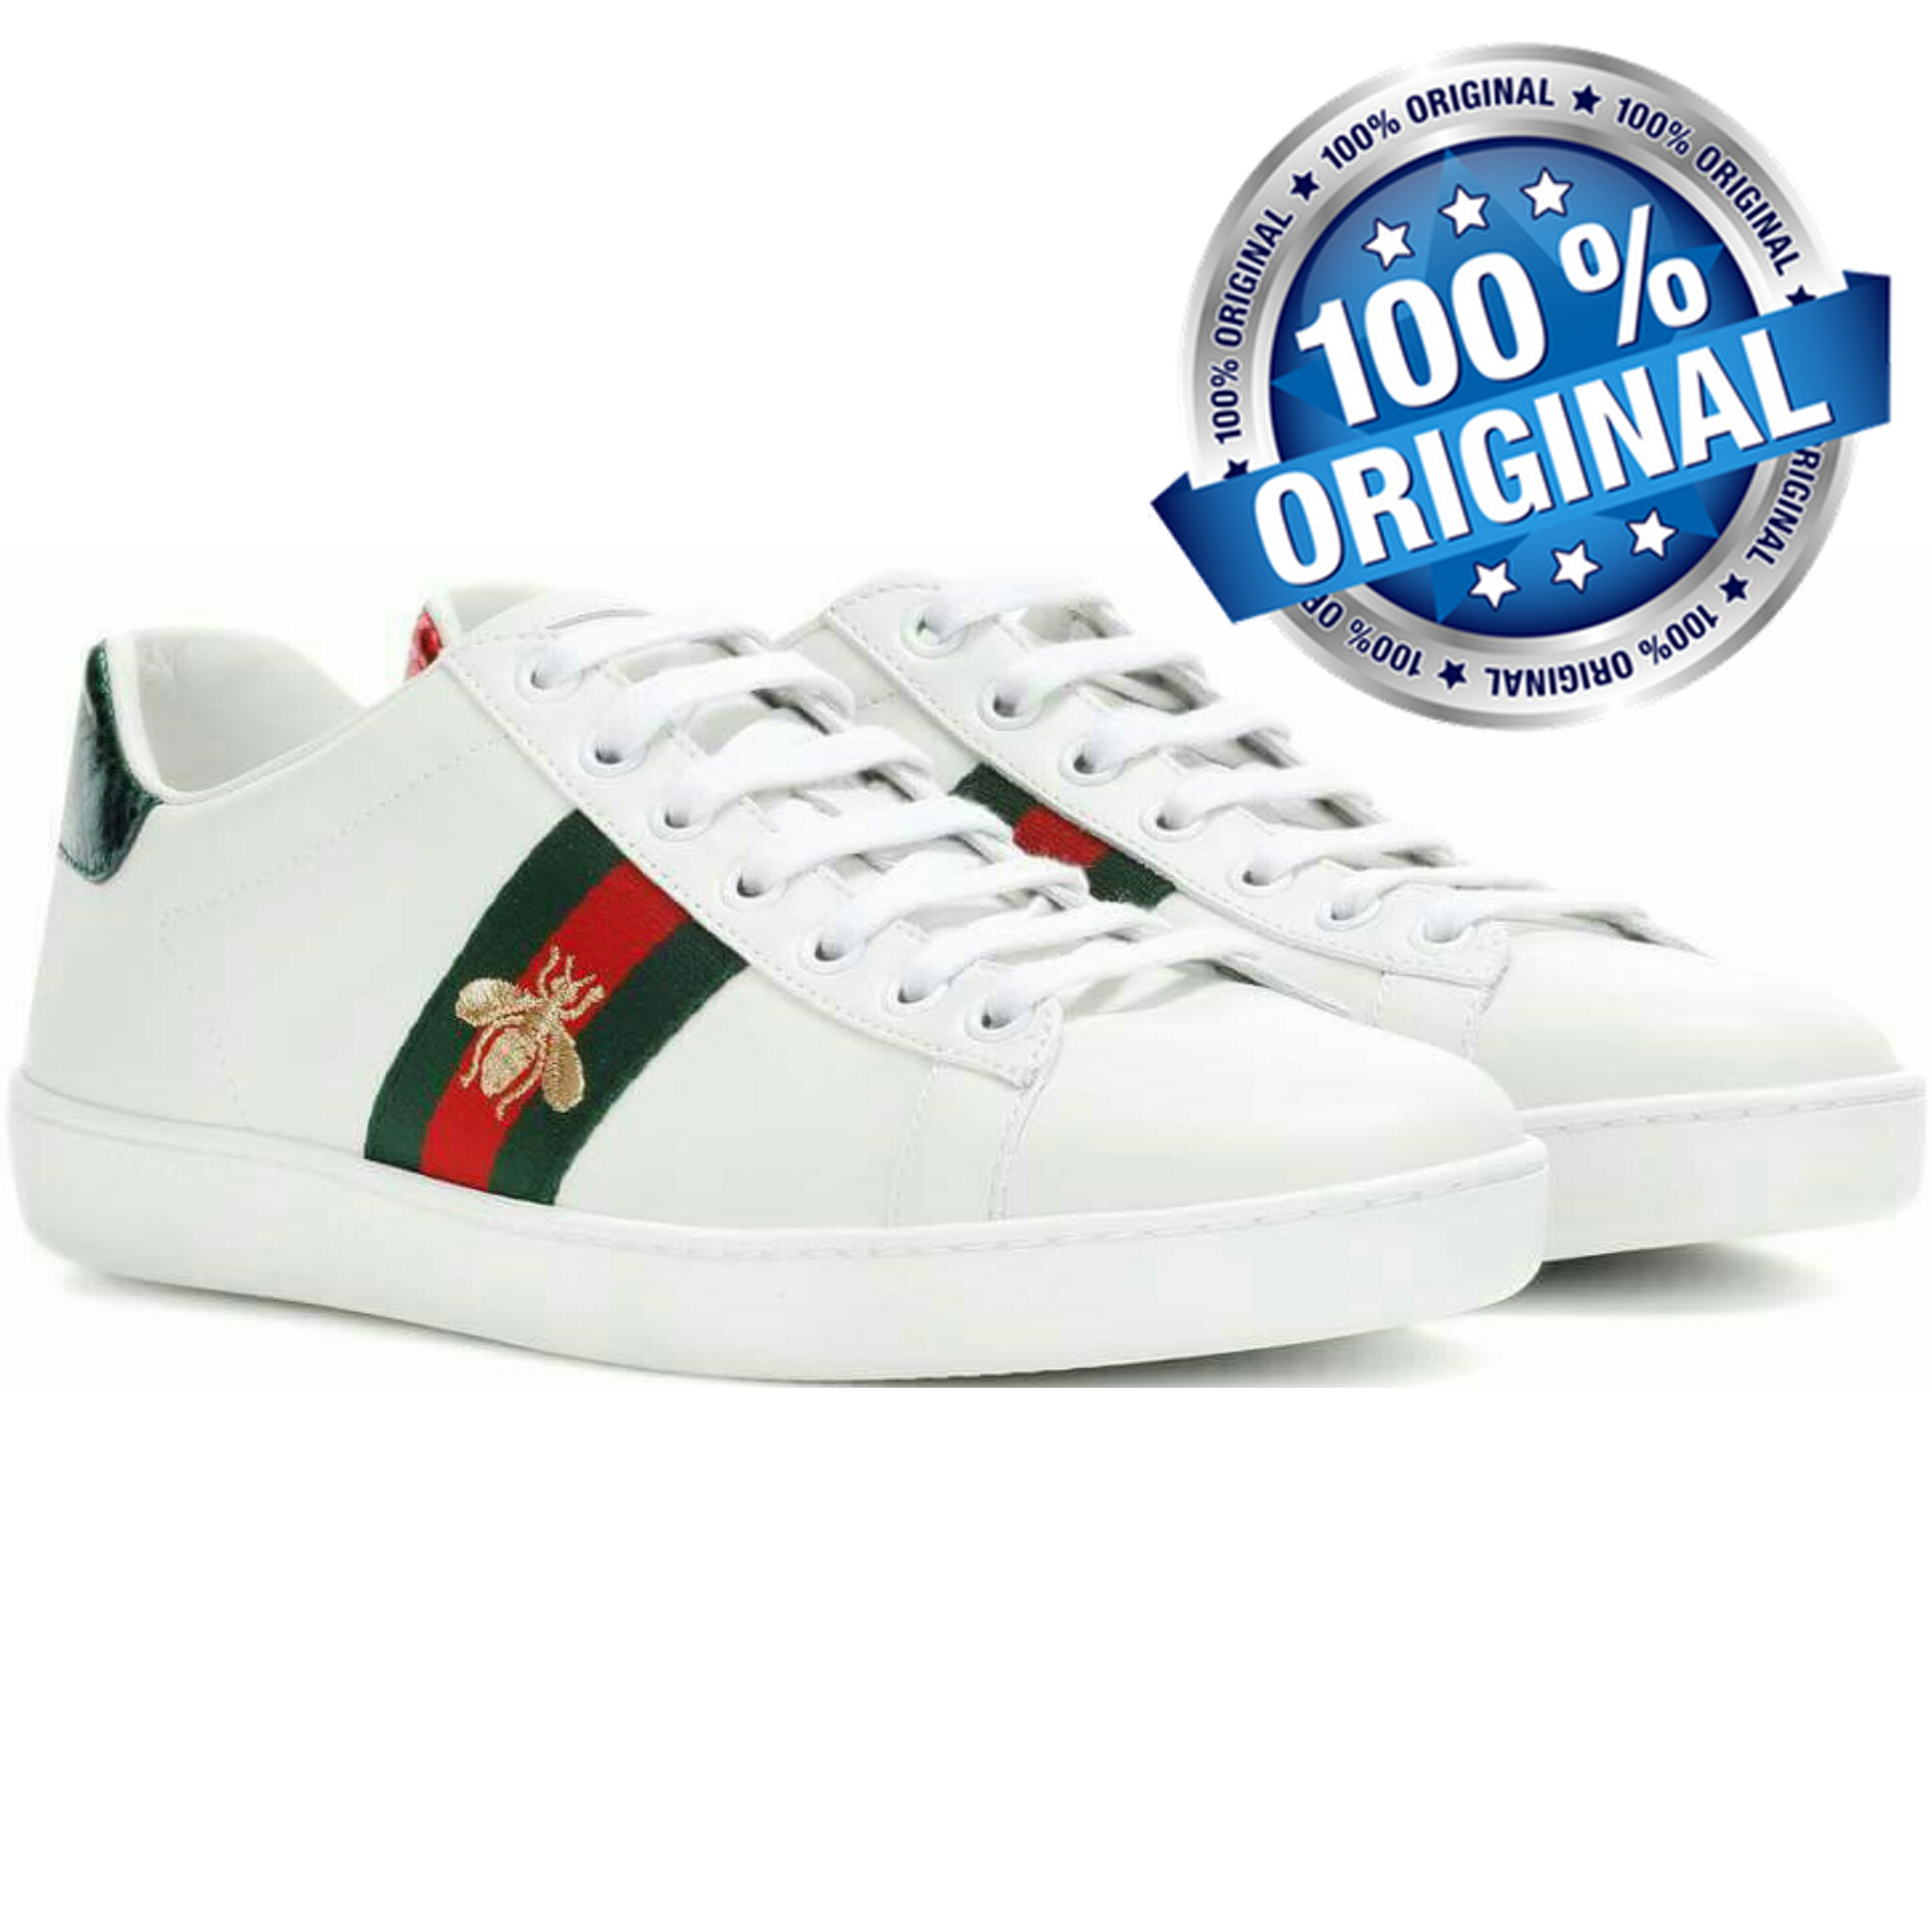 38c4775a586 100% Original Gucci Ace bee Sneaker For Men Prices In Pakistan ...